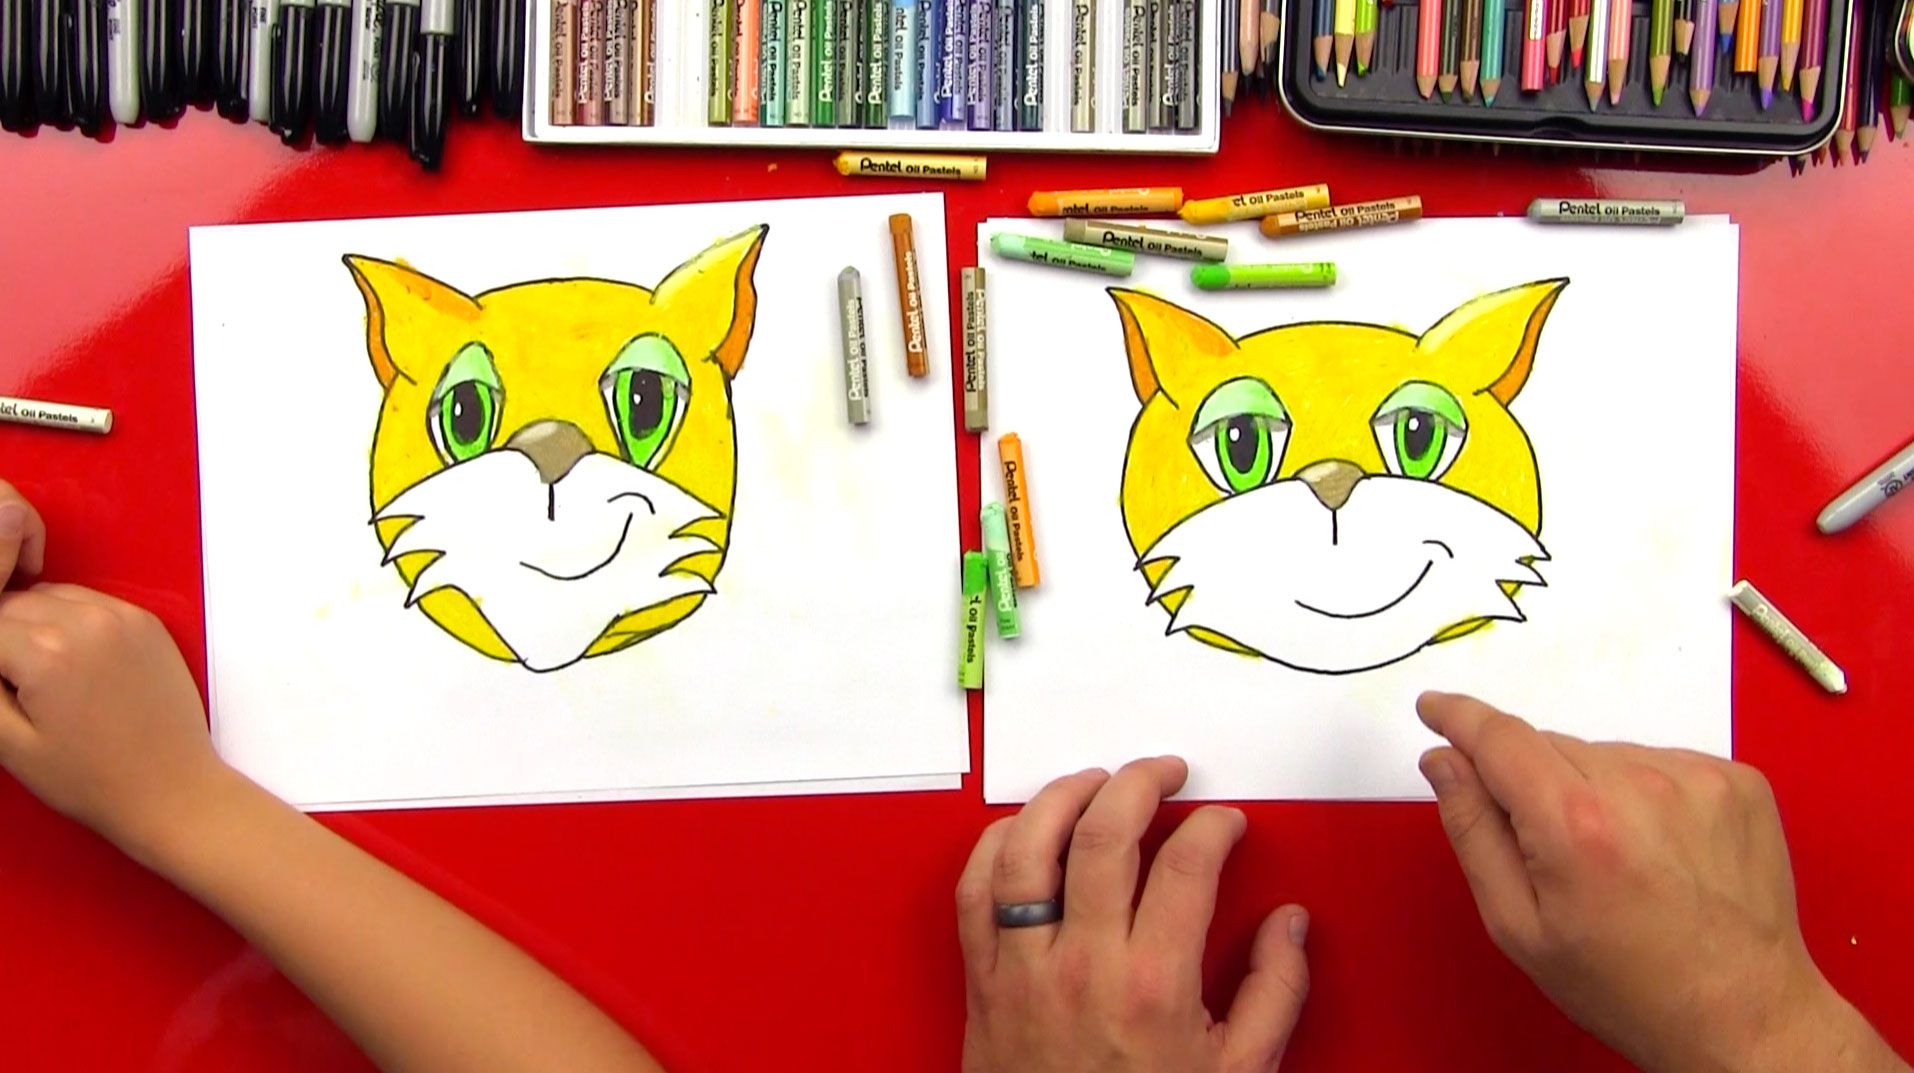 How to draw stampy art for kids hub altavistaventures Image collections